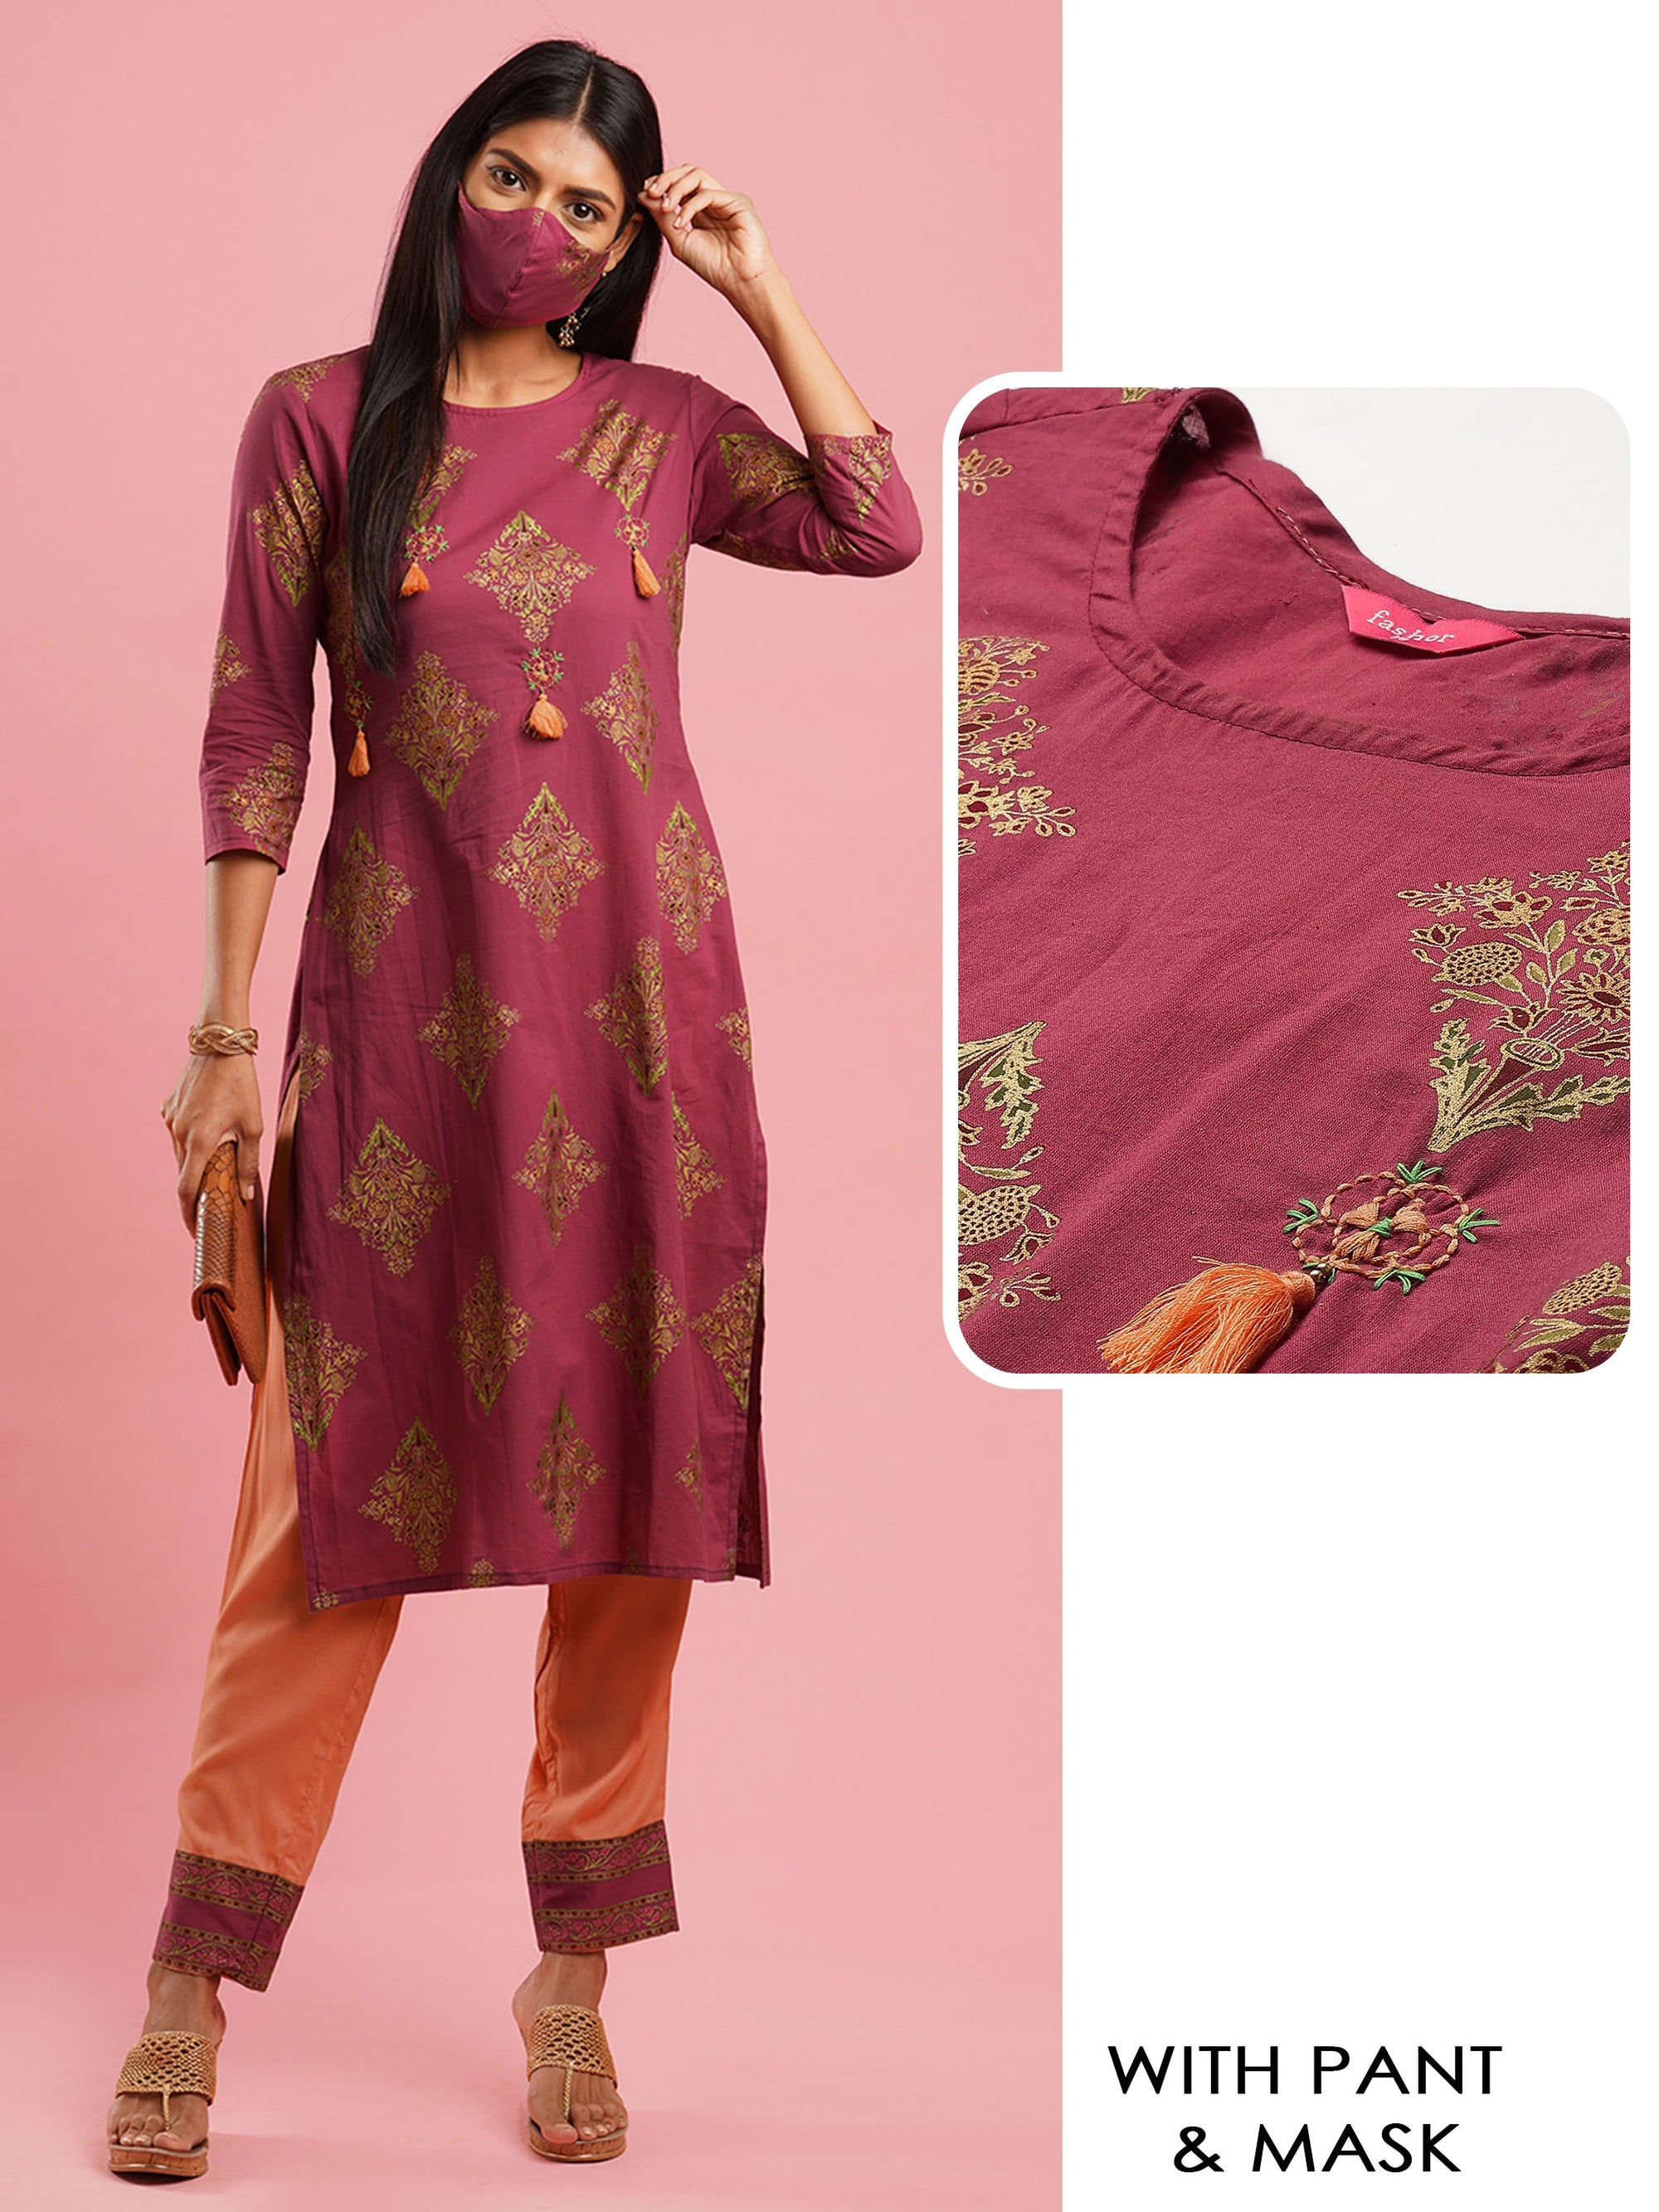 Ethnic Foil Printed & Handcrafted Straight Kurta with Pant with 2-Ply Mask – Hippie Pink